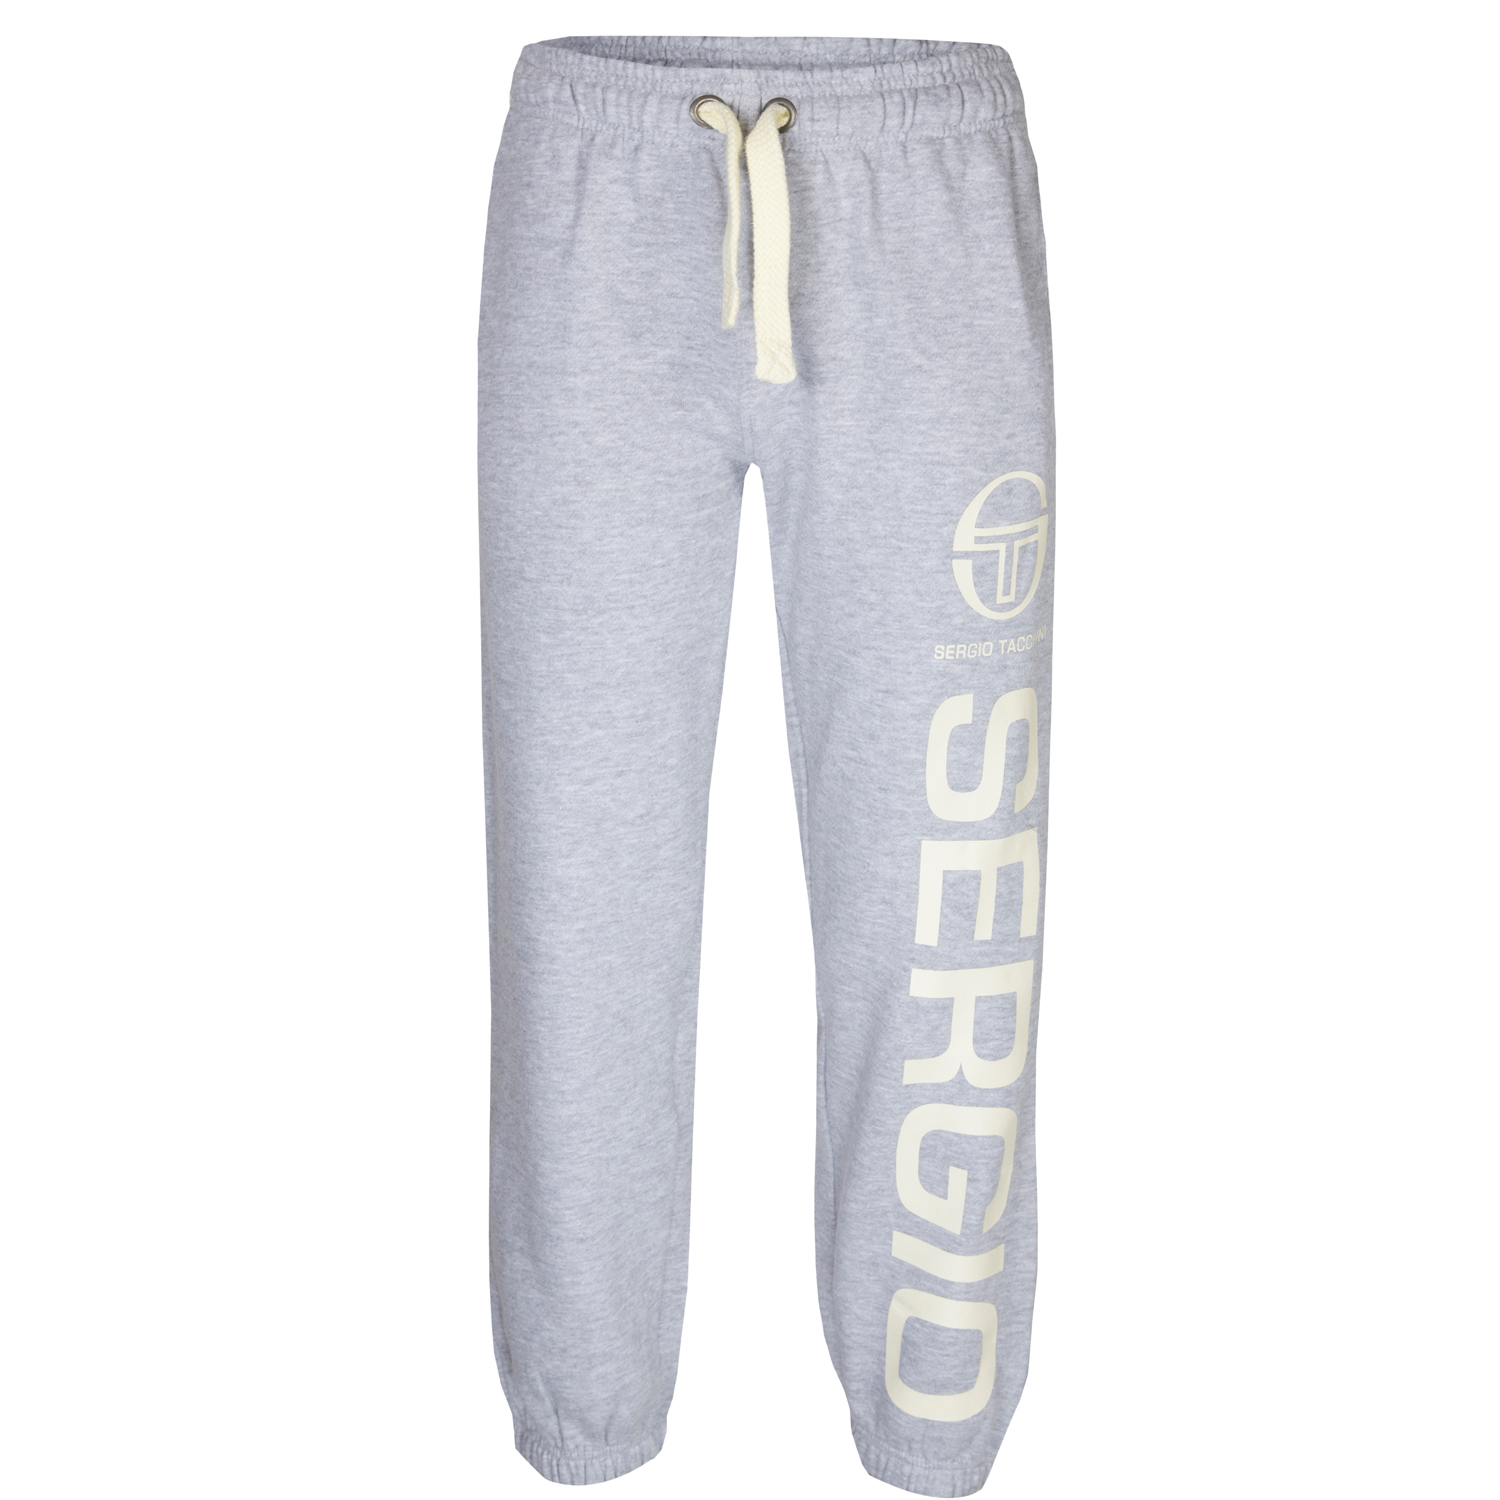 Sergio Tacchini Mens Fleece Tracksuit Jogging Bottoms Sweatpants New